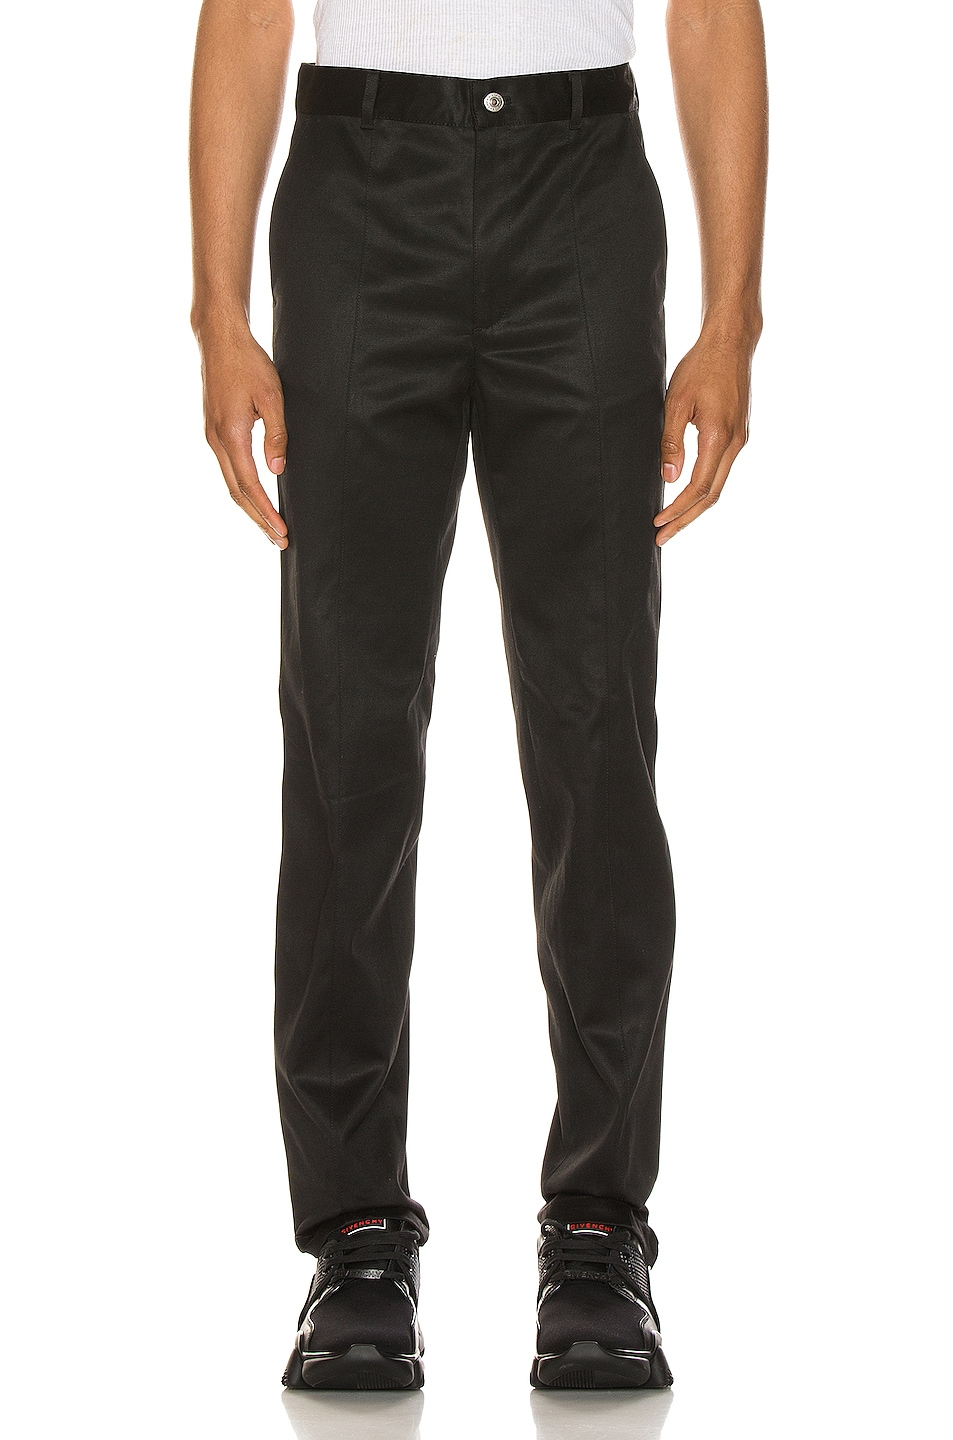 Image 1 of Givenchy Slim Fit Pants in Black